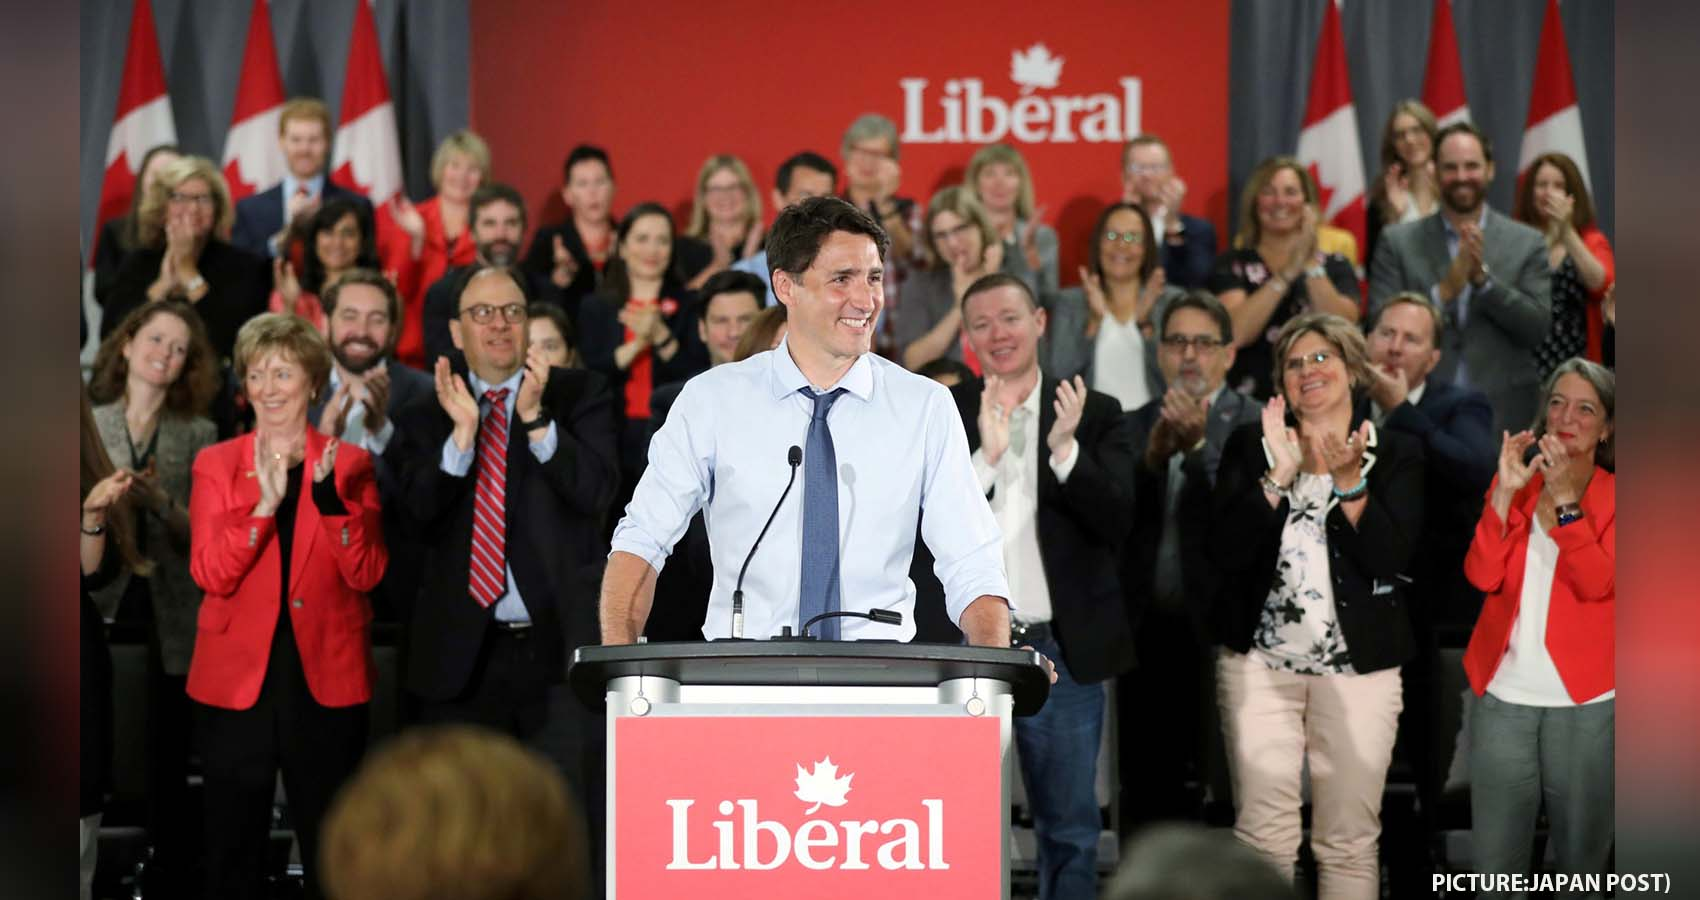 Several Indo-Canadians Elected To Parliament, As Trudeau Returns To Power